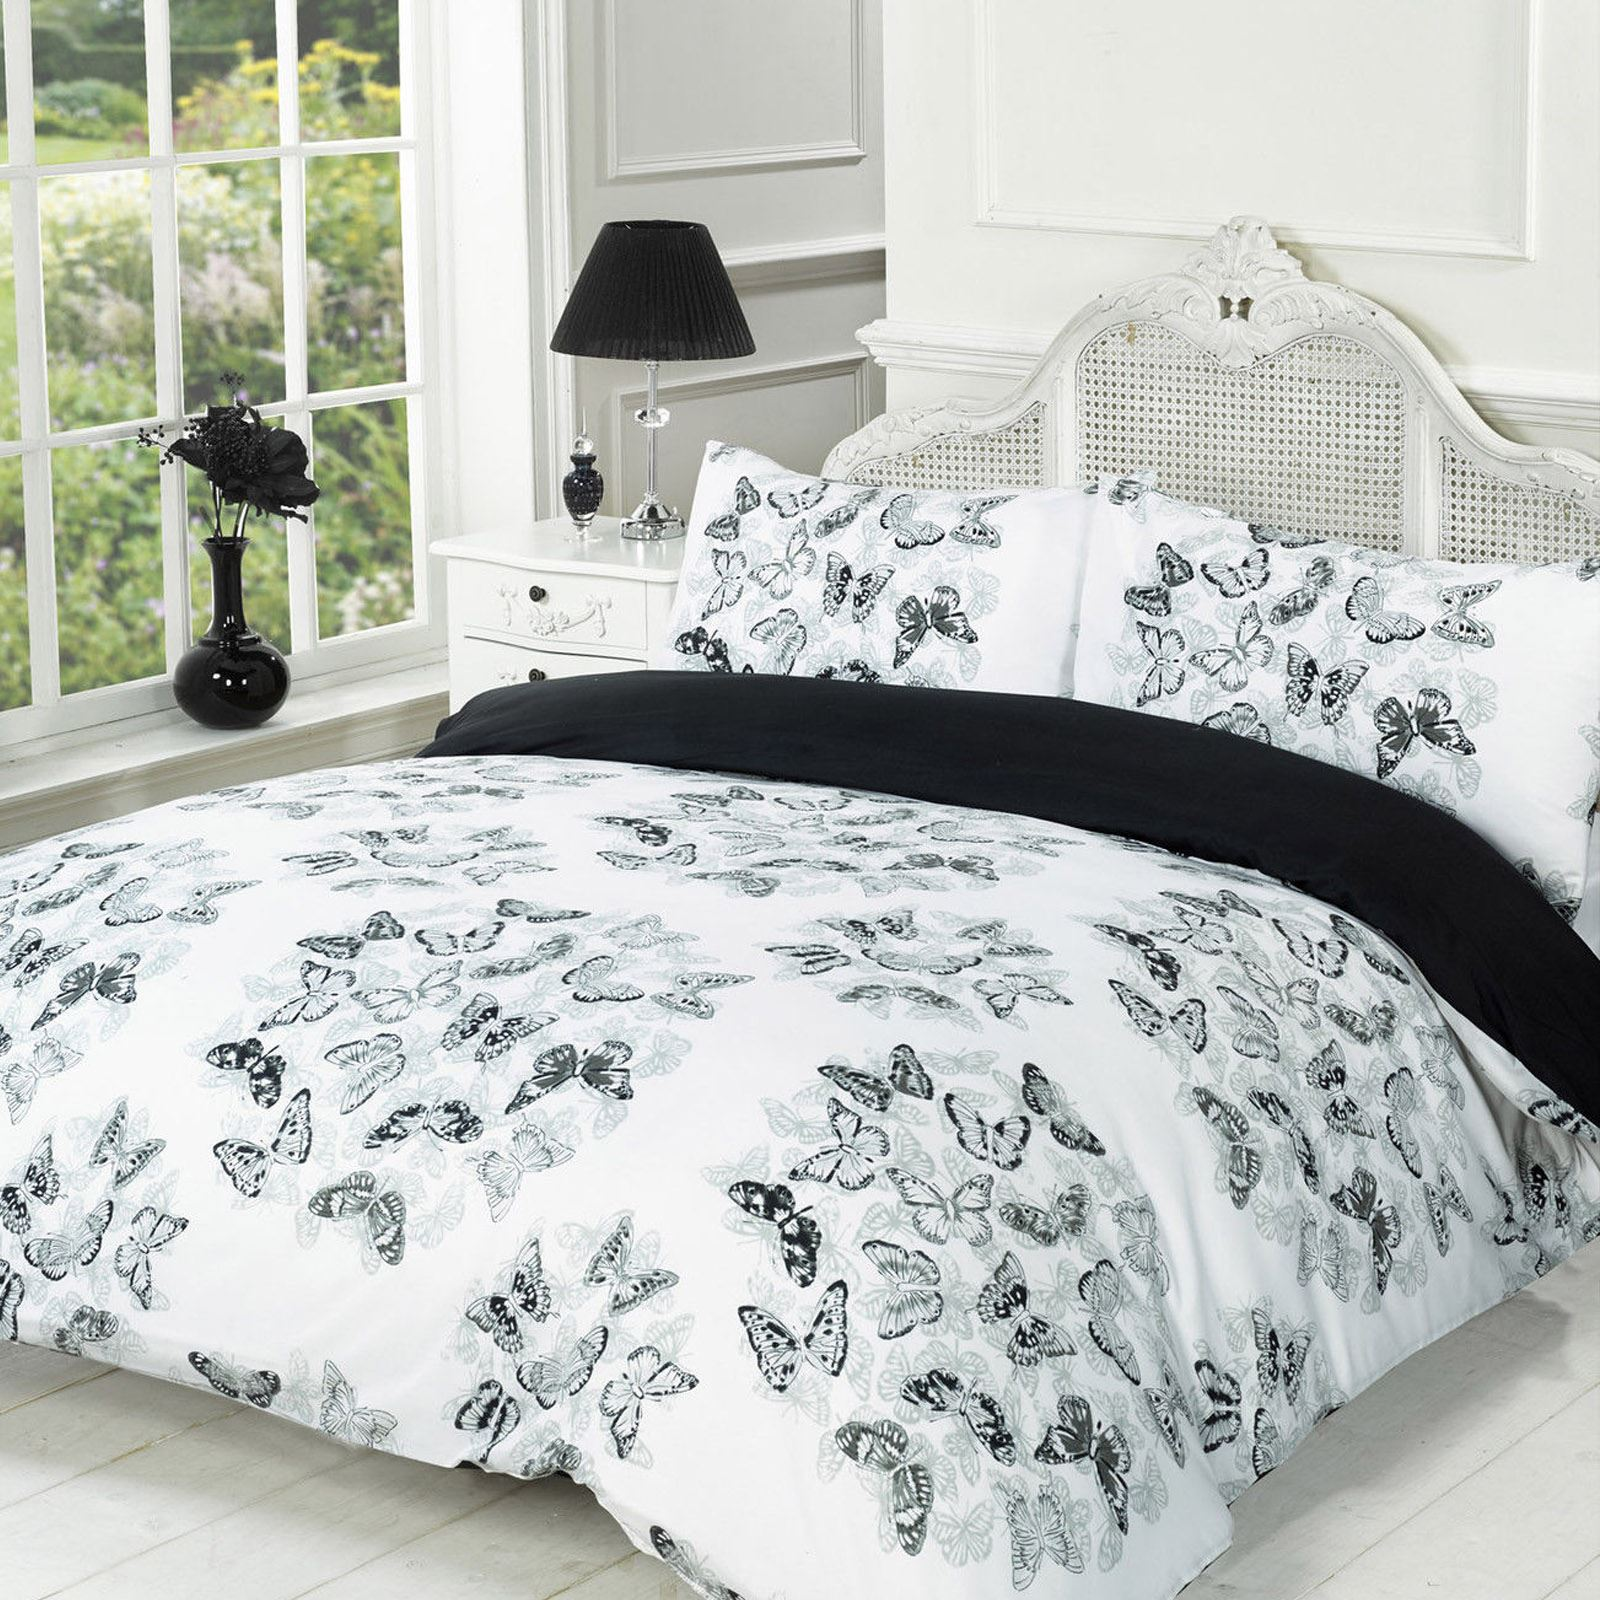 Trasign Modern Duvet Cover Queen with Trees Printed Pillowcases Kids Cotton Duvet Comforter Cover Soft Striped Bedding Set for Boys and Girls, Queen. by Trasign. $ $ 55 98 Prime. FREE Shipping on eligible orders. Only 9 left in stock - order soon. out of 5 stars